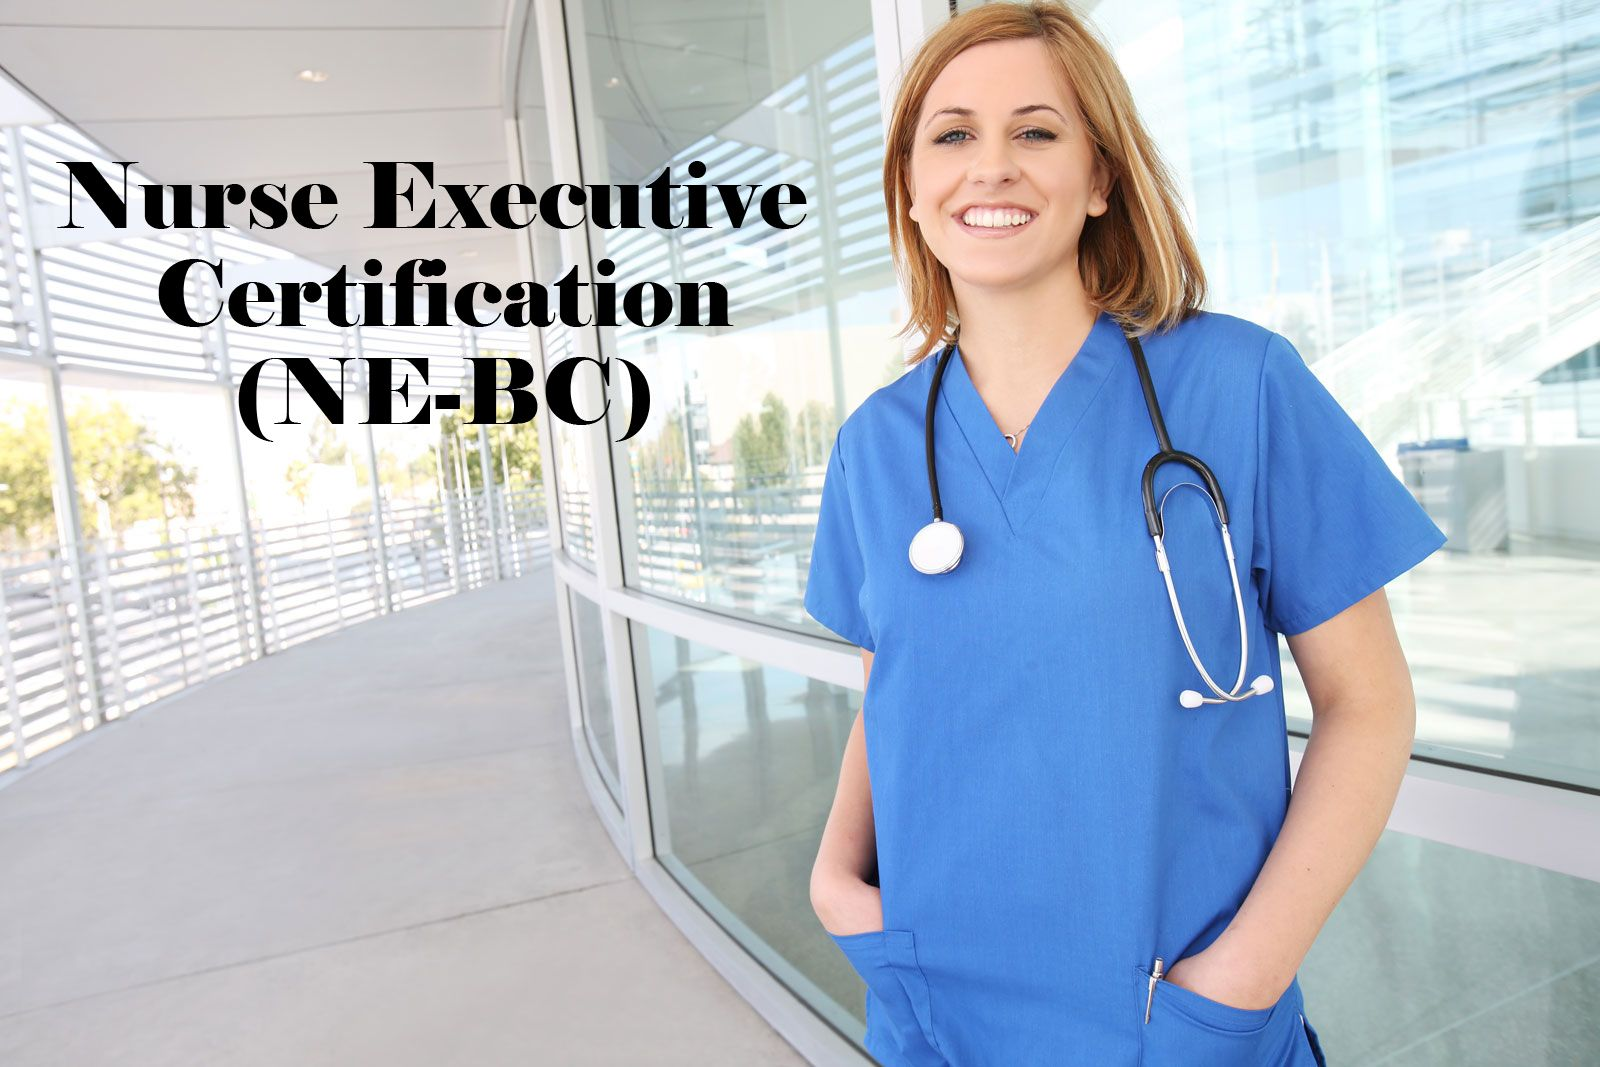 The NEBC certification is a nationallyrecognized